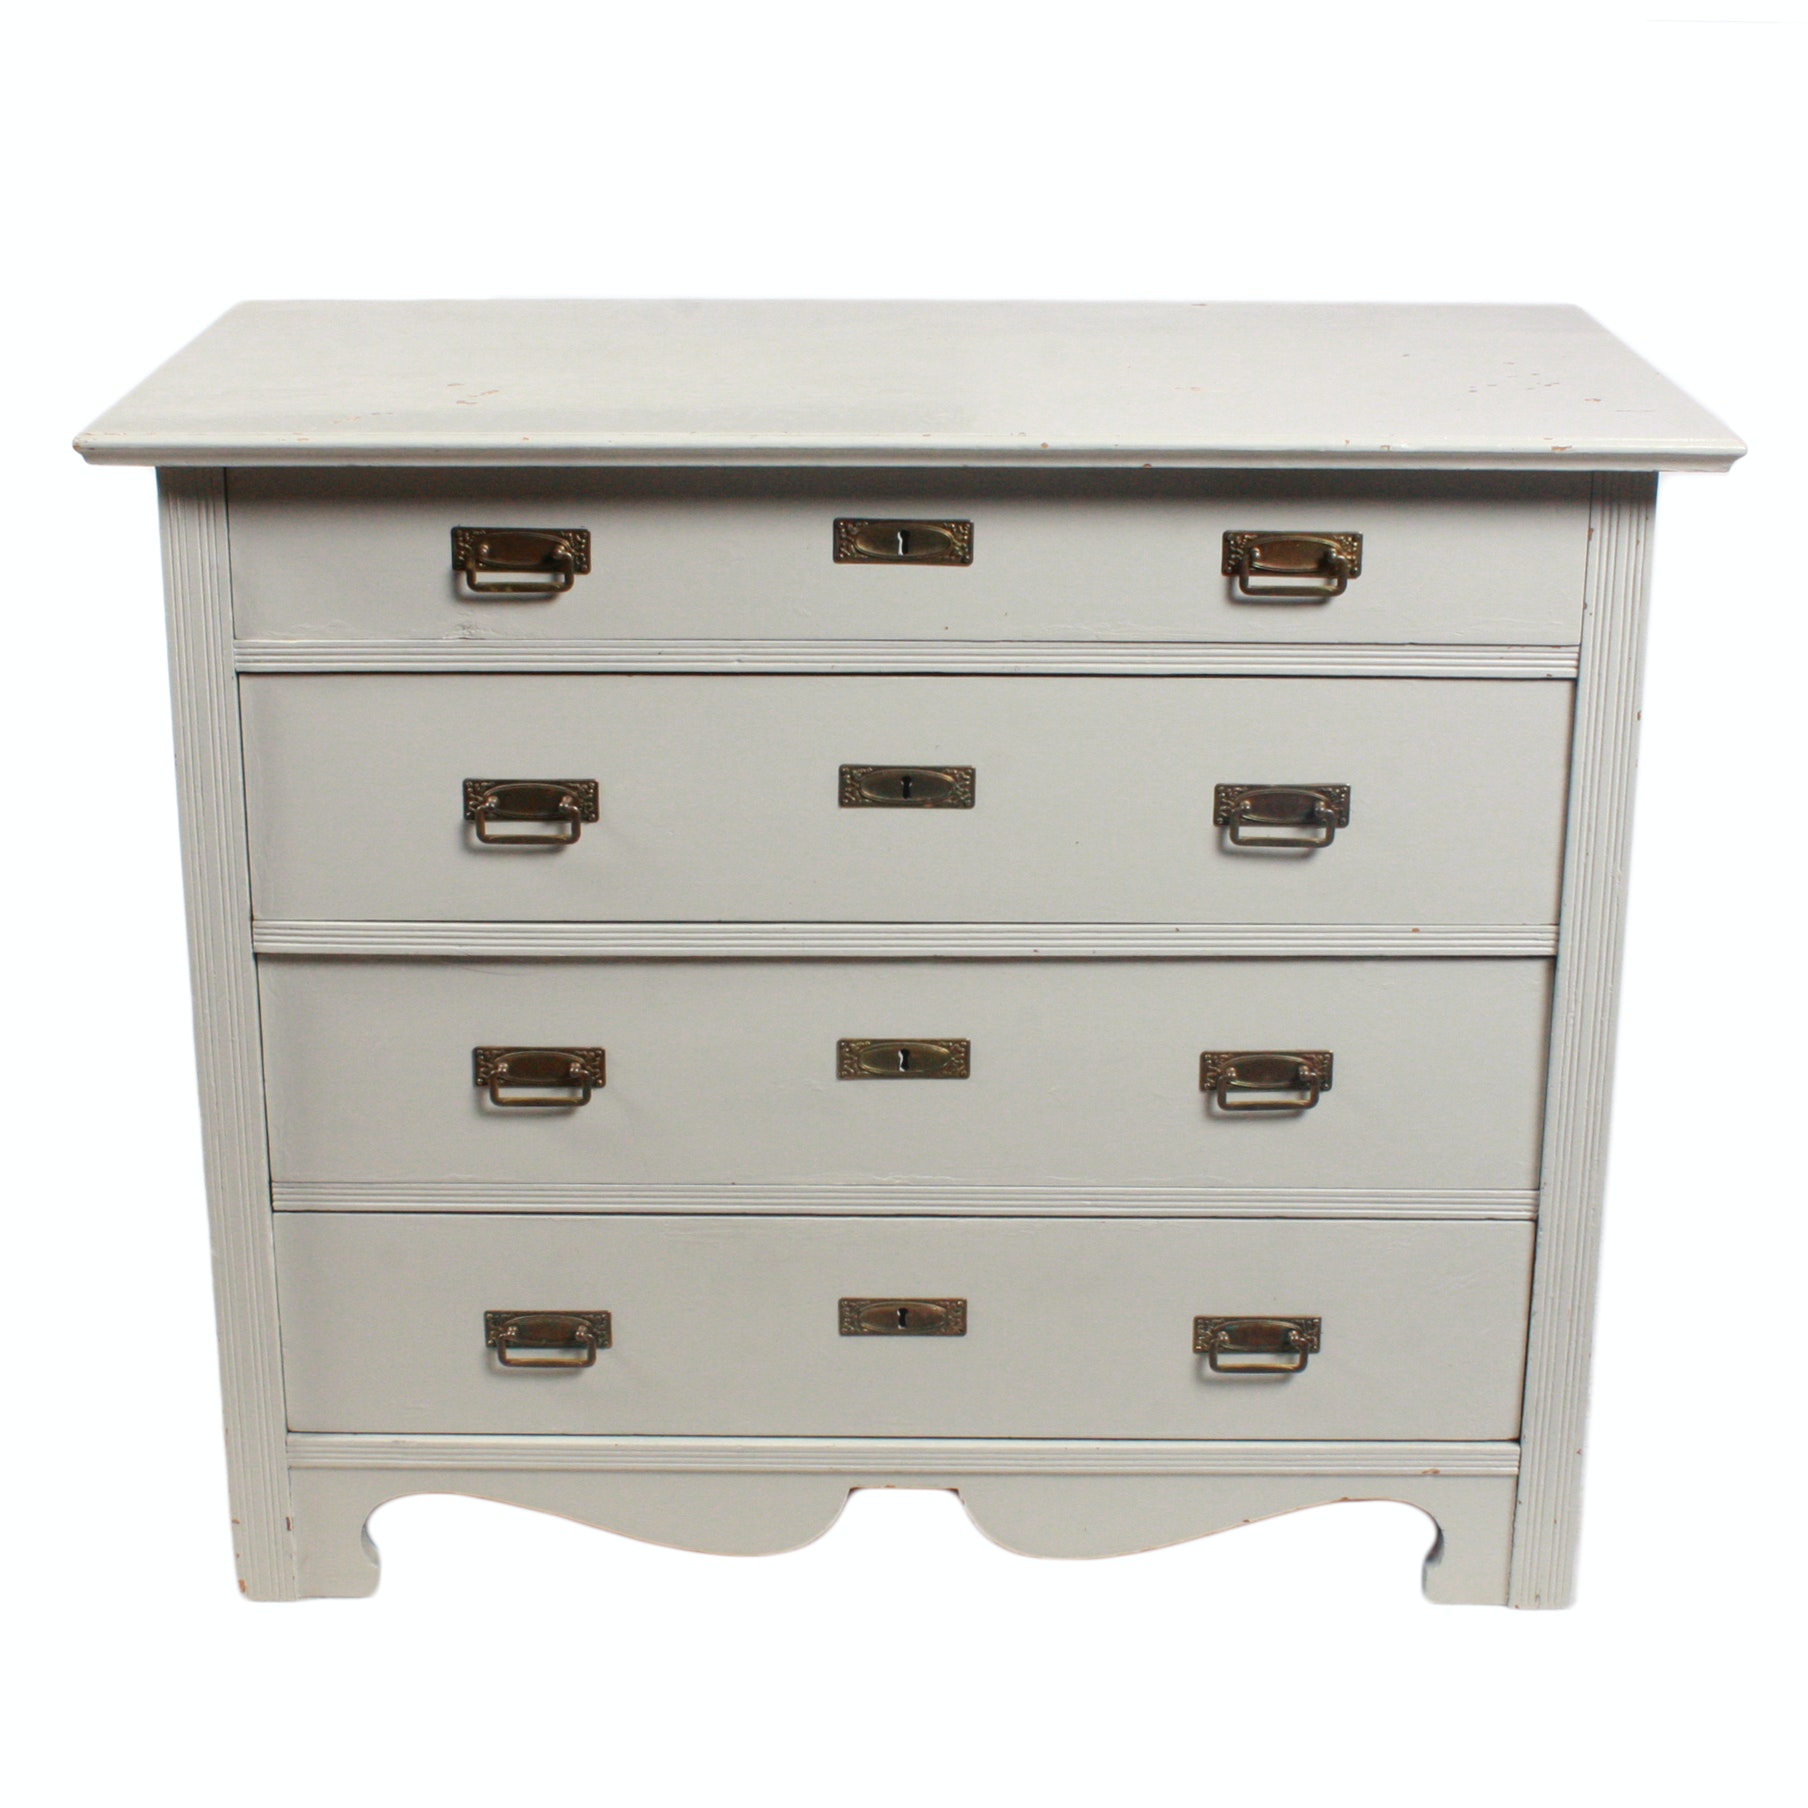 Swedish Style Painted Wood Chest of Drawers